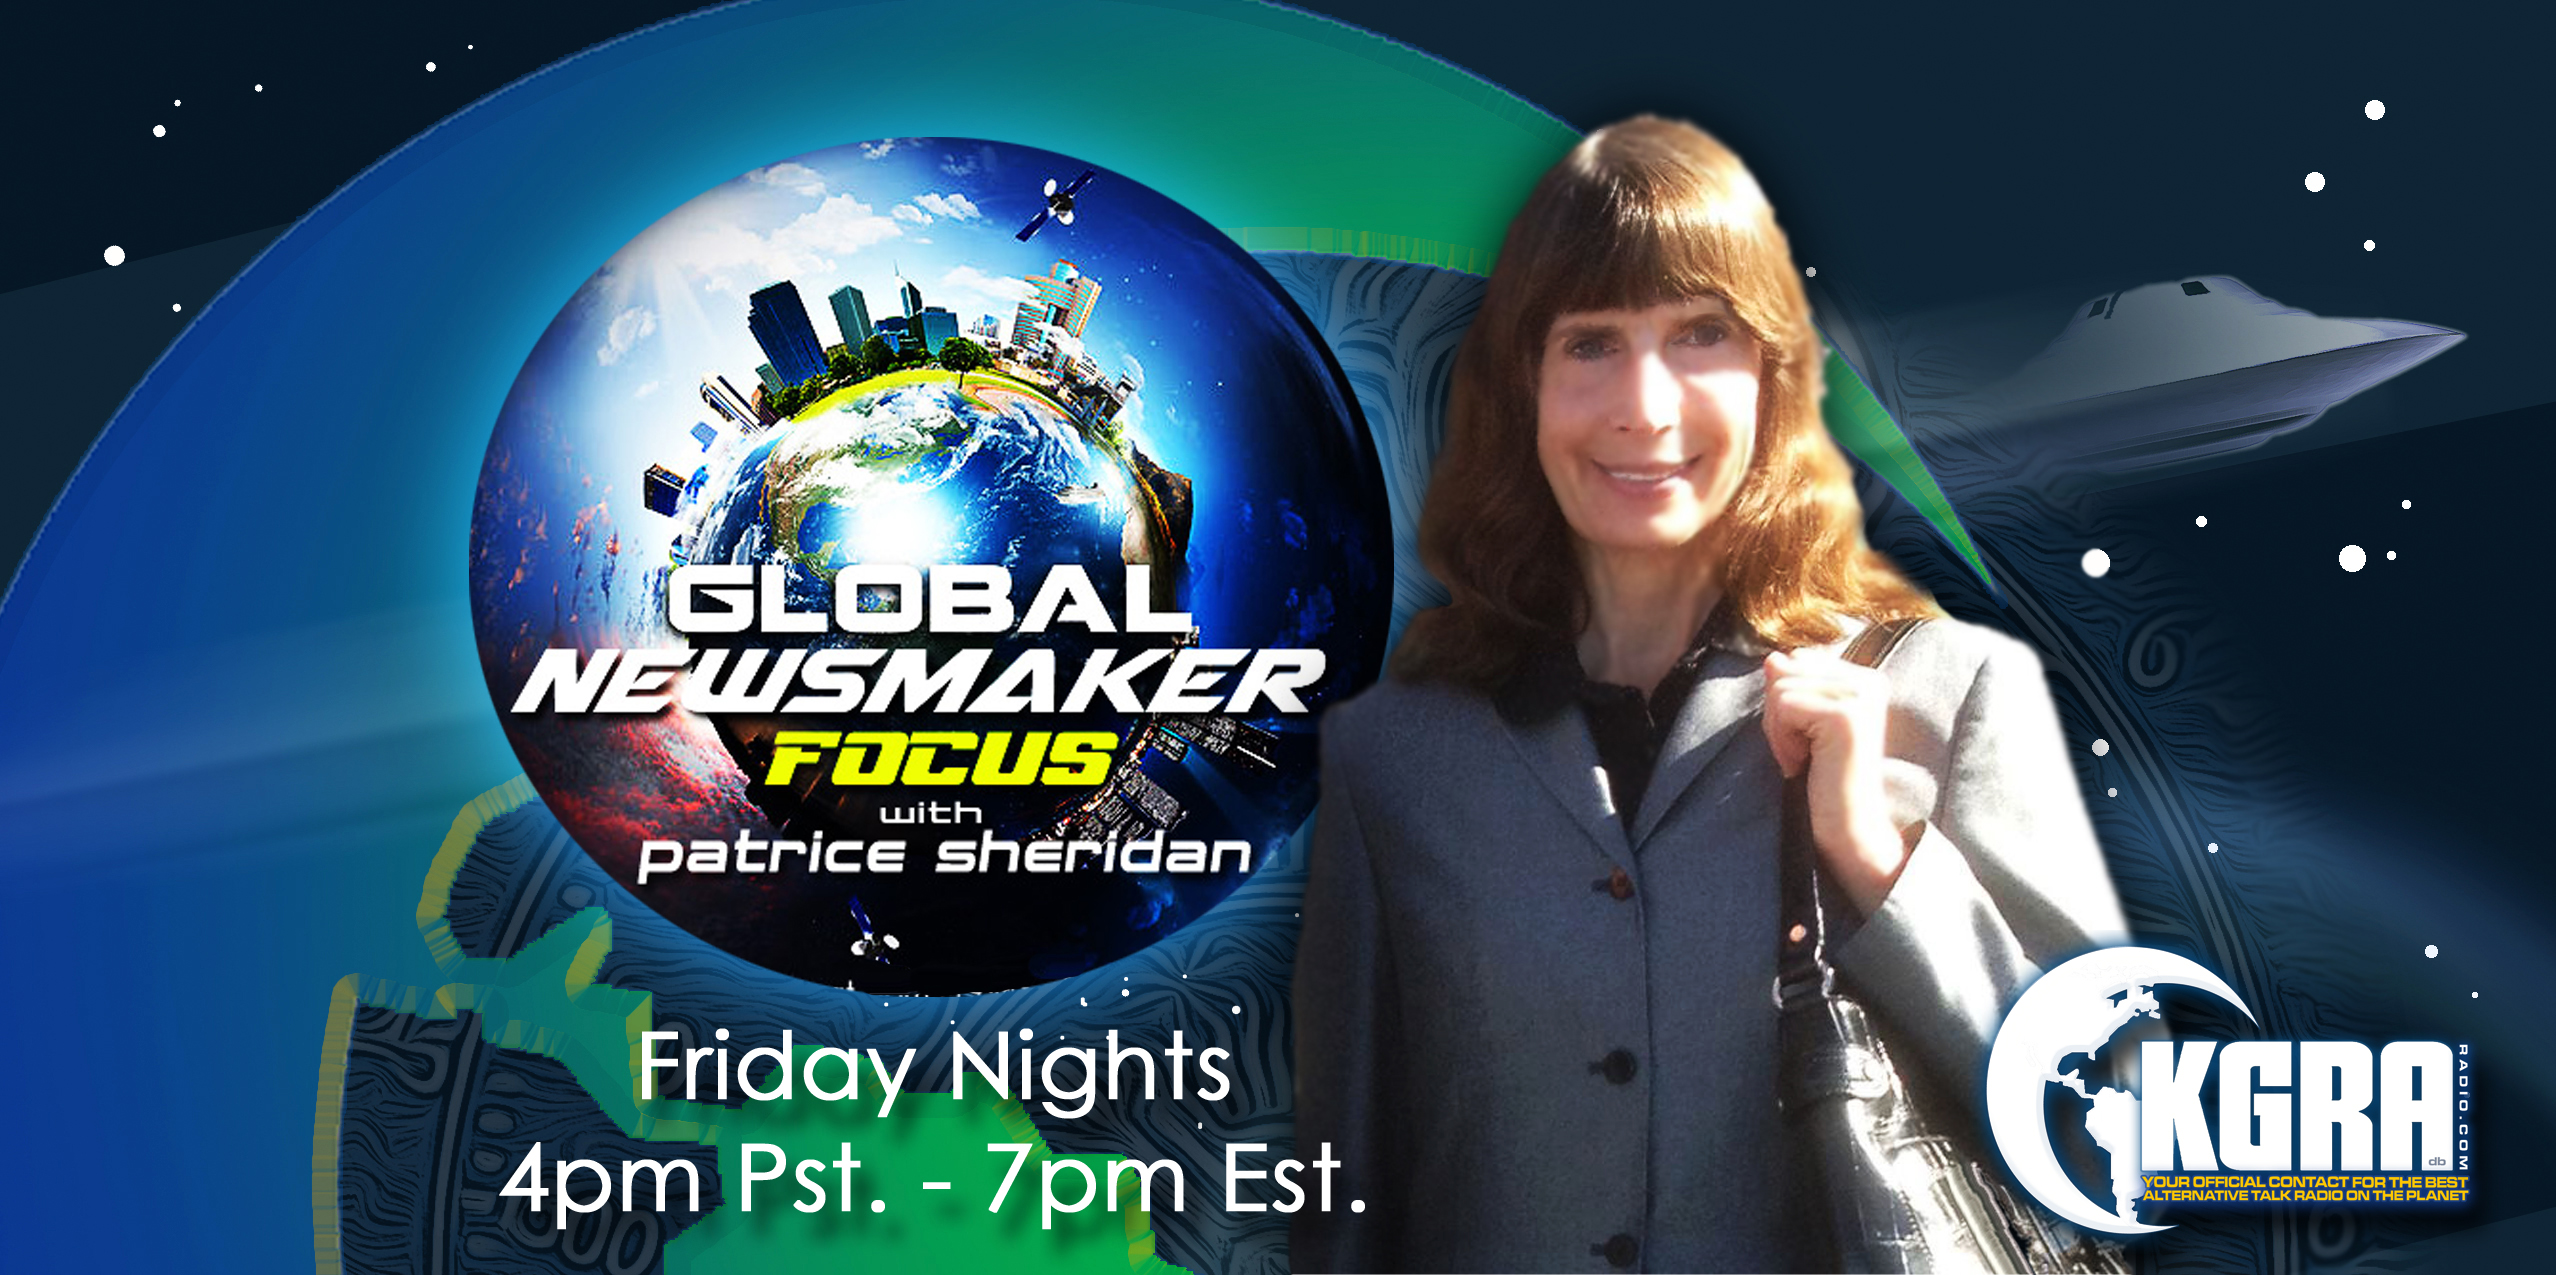 Global Newsmaker Focus Welcomes: Derek P. Gilbert